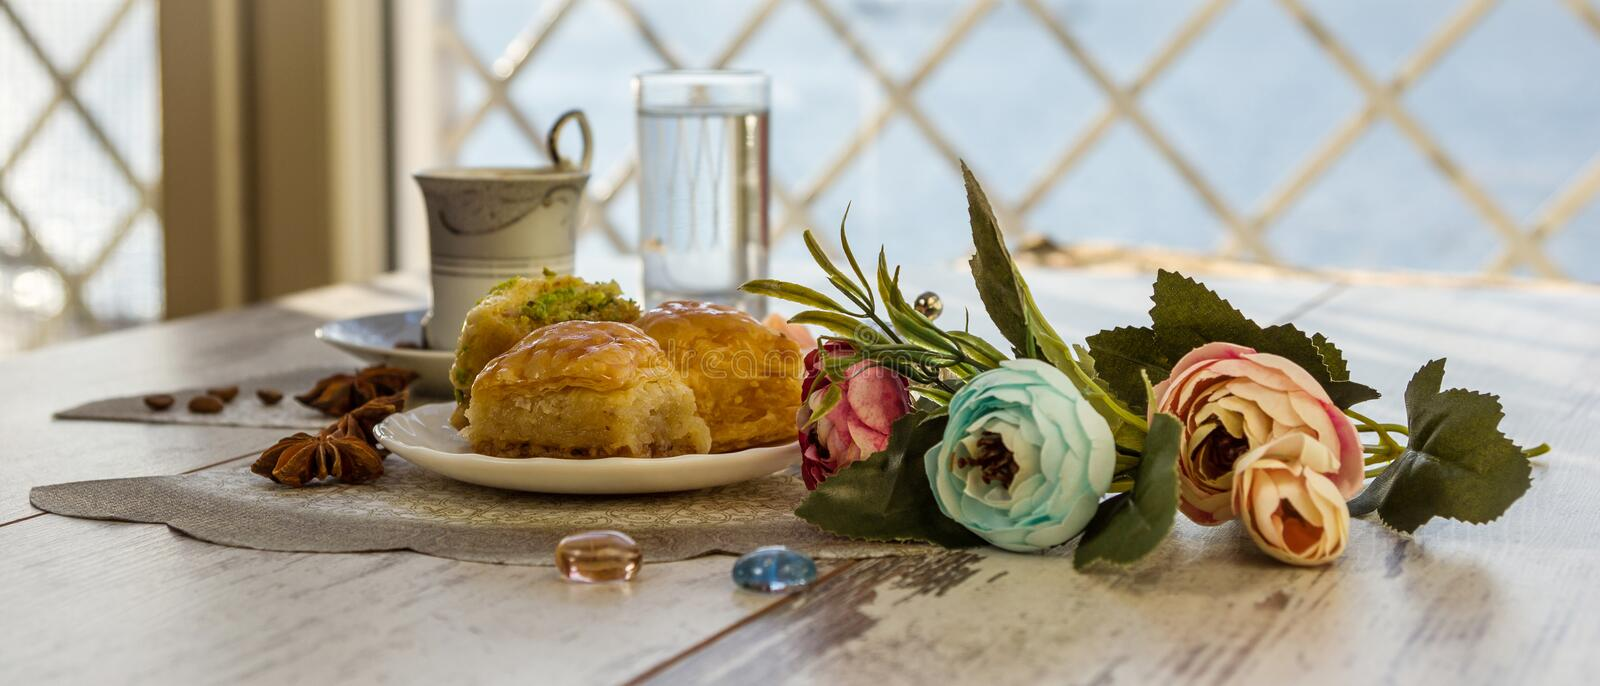 Cup of Turkish coffee and a plate with baklava royalty free stock photo